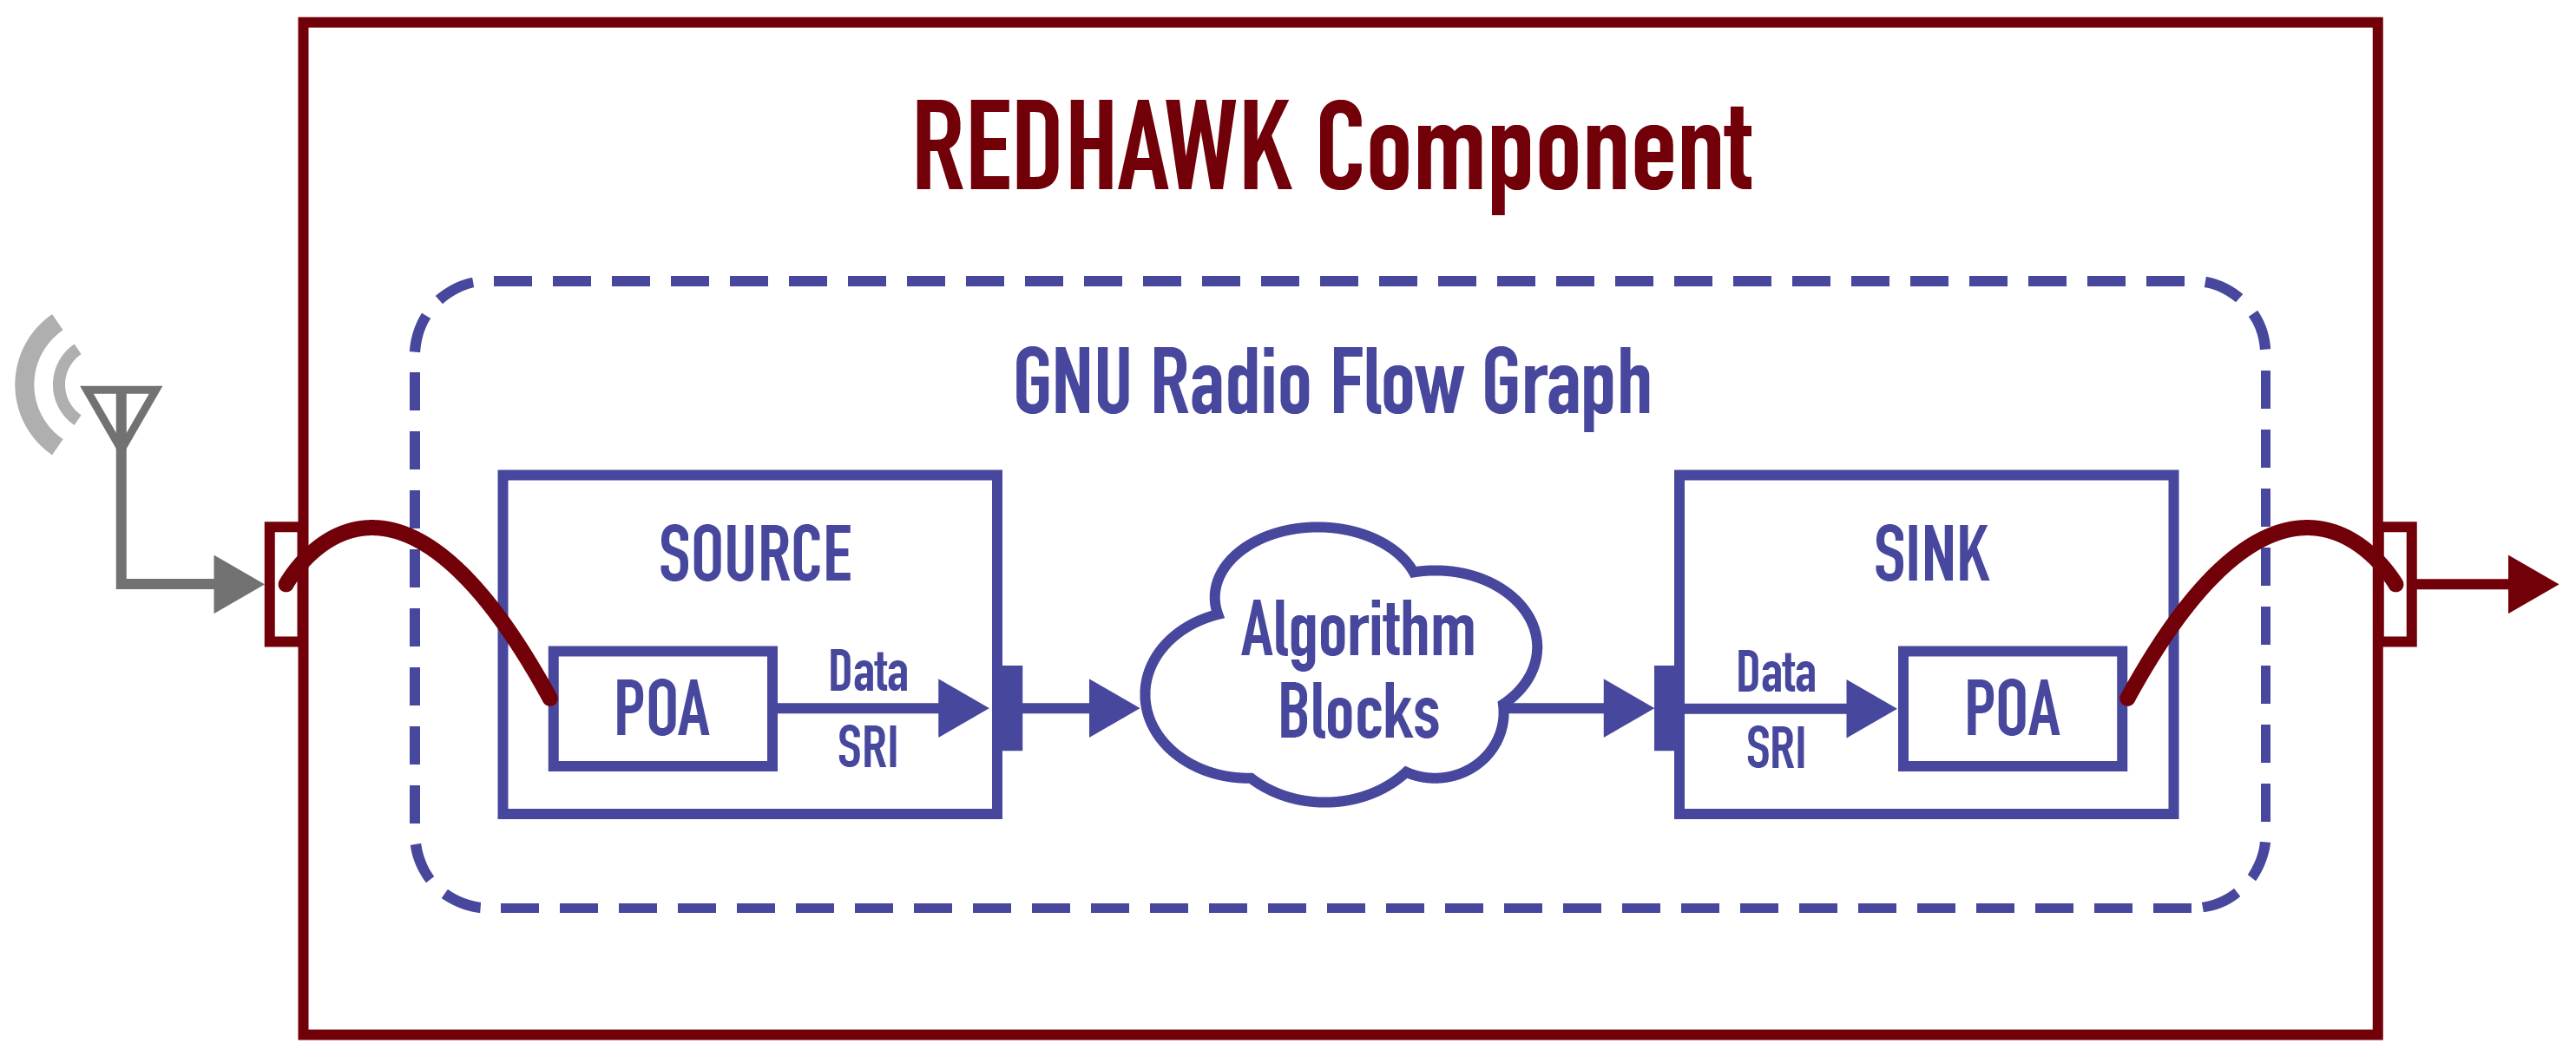 GNURadio REDHAWK Integration - Geon Technologies, LLC